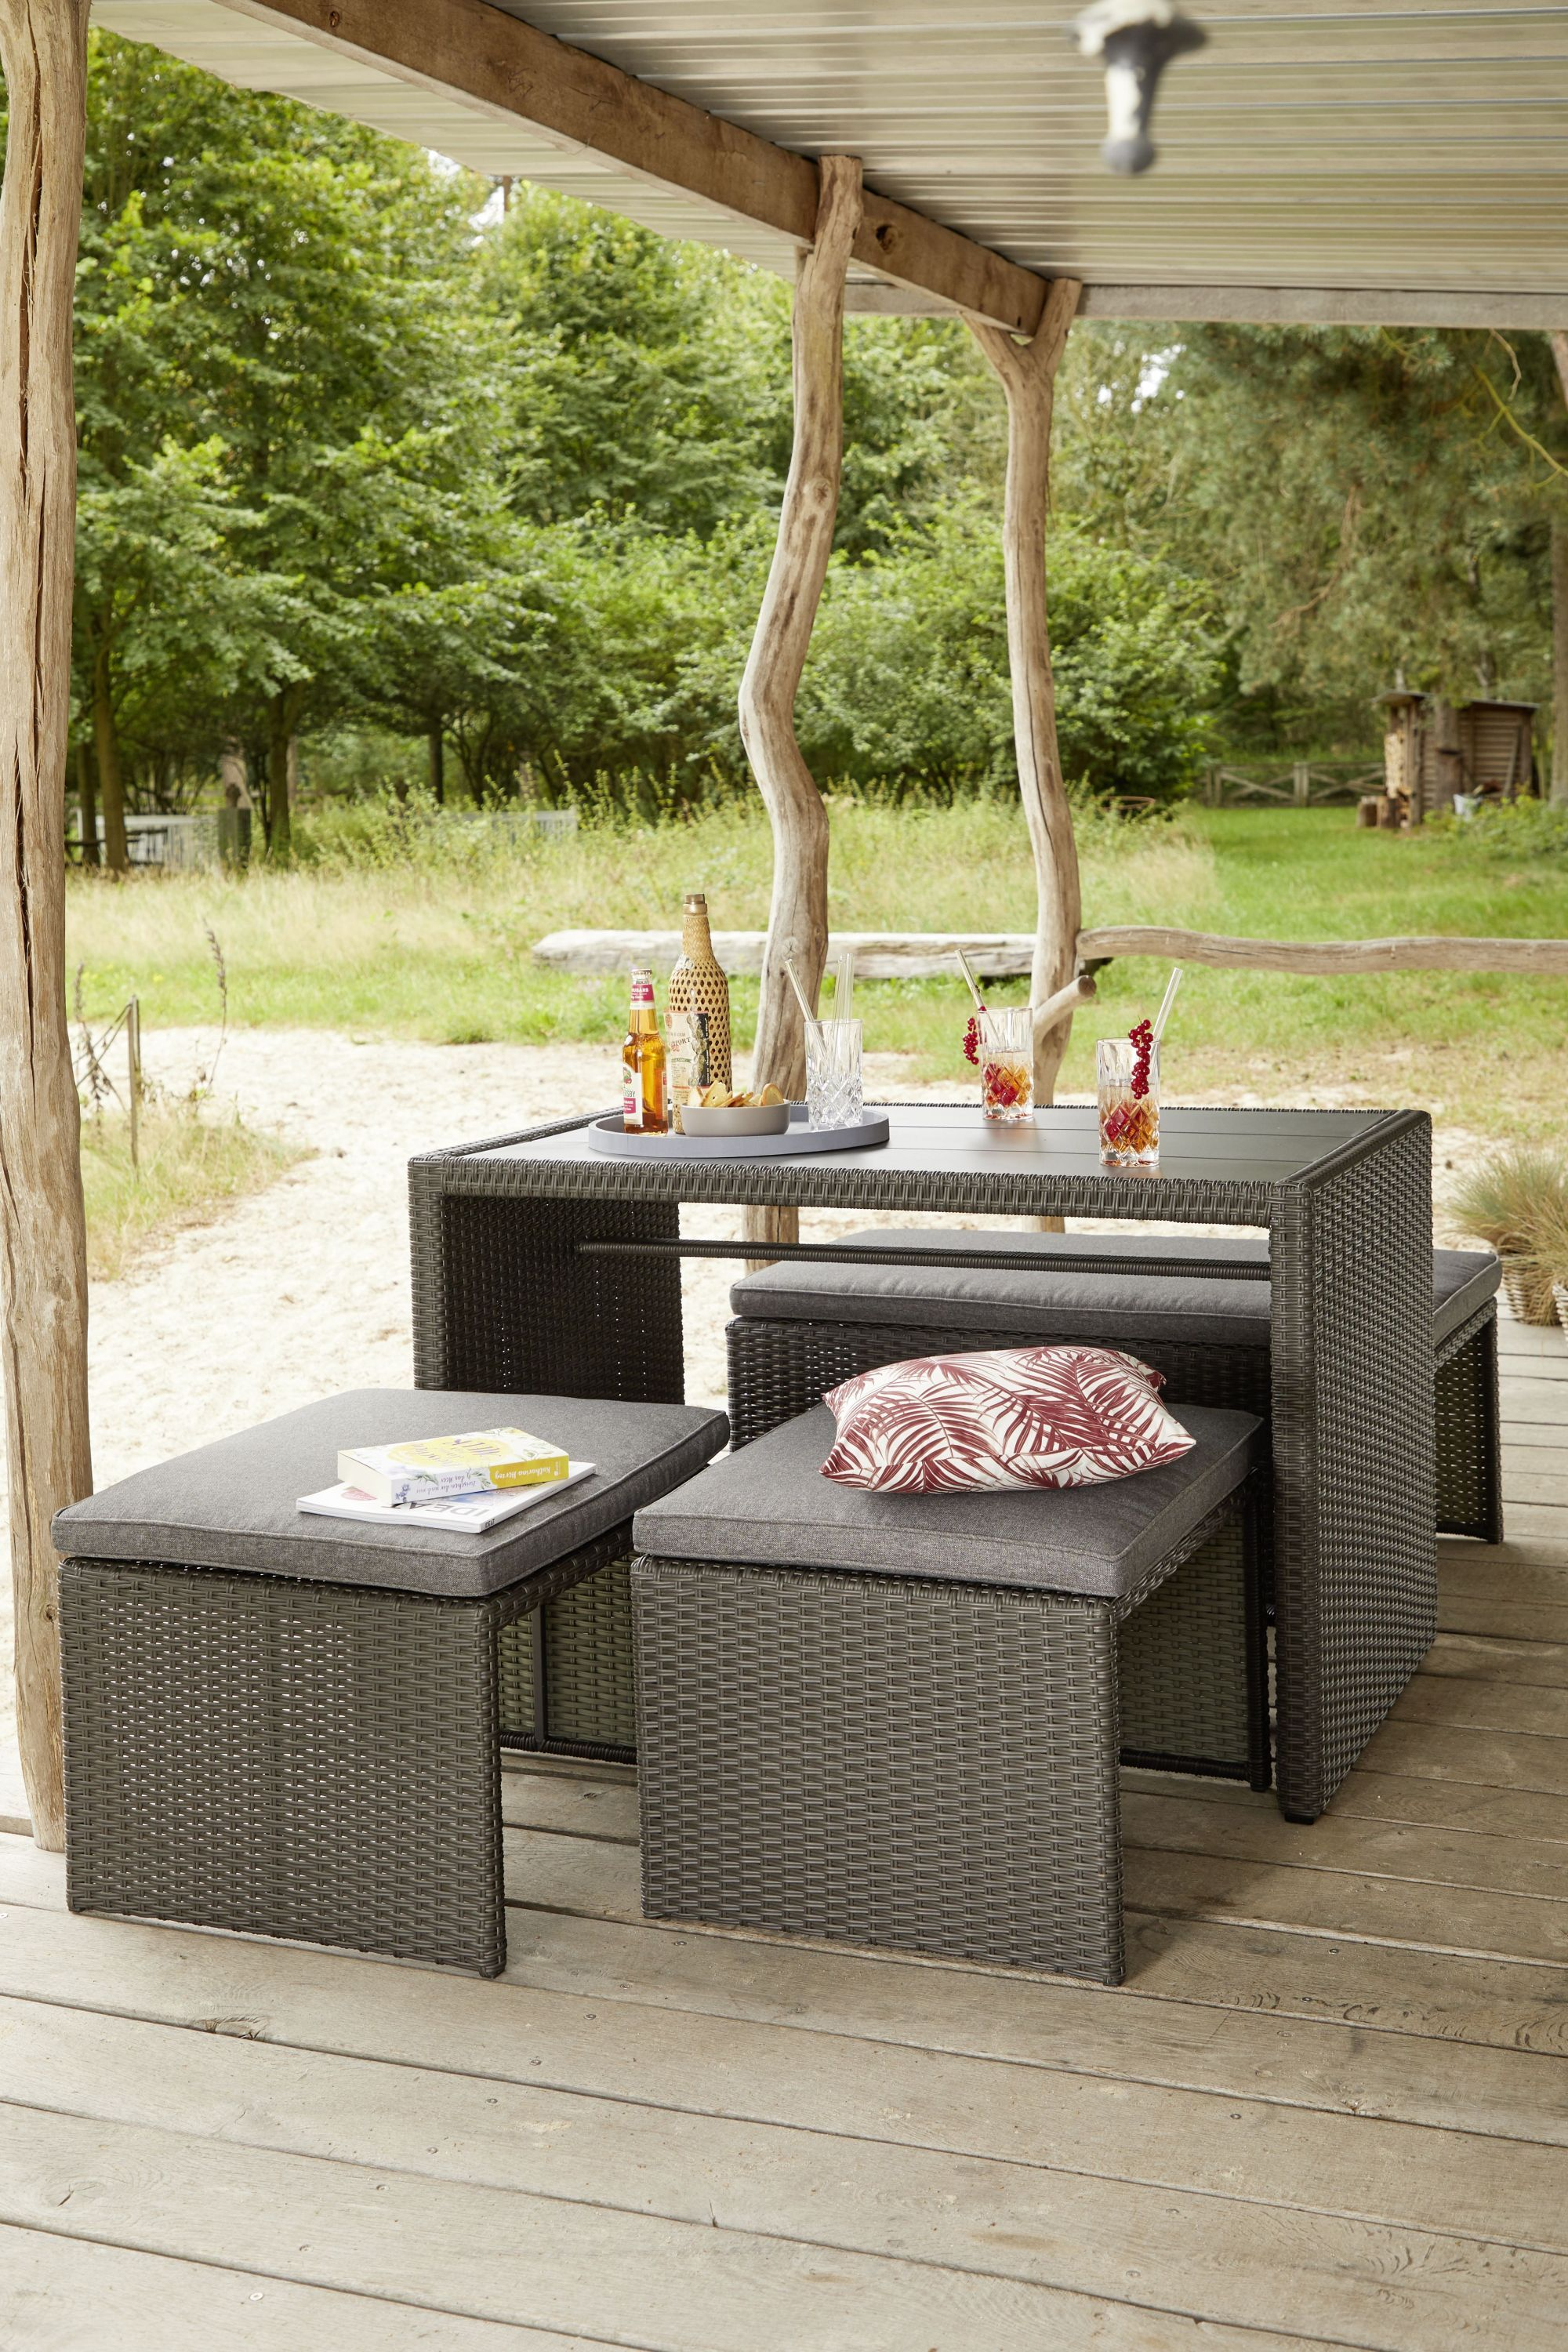 Lounge Outdoor Lorena In 2020 Im Freien Gartenmobel Sets Lounge